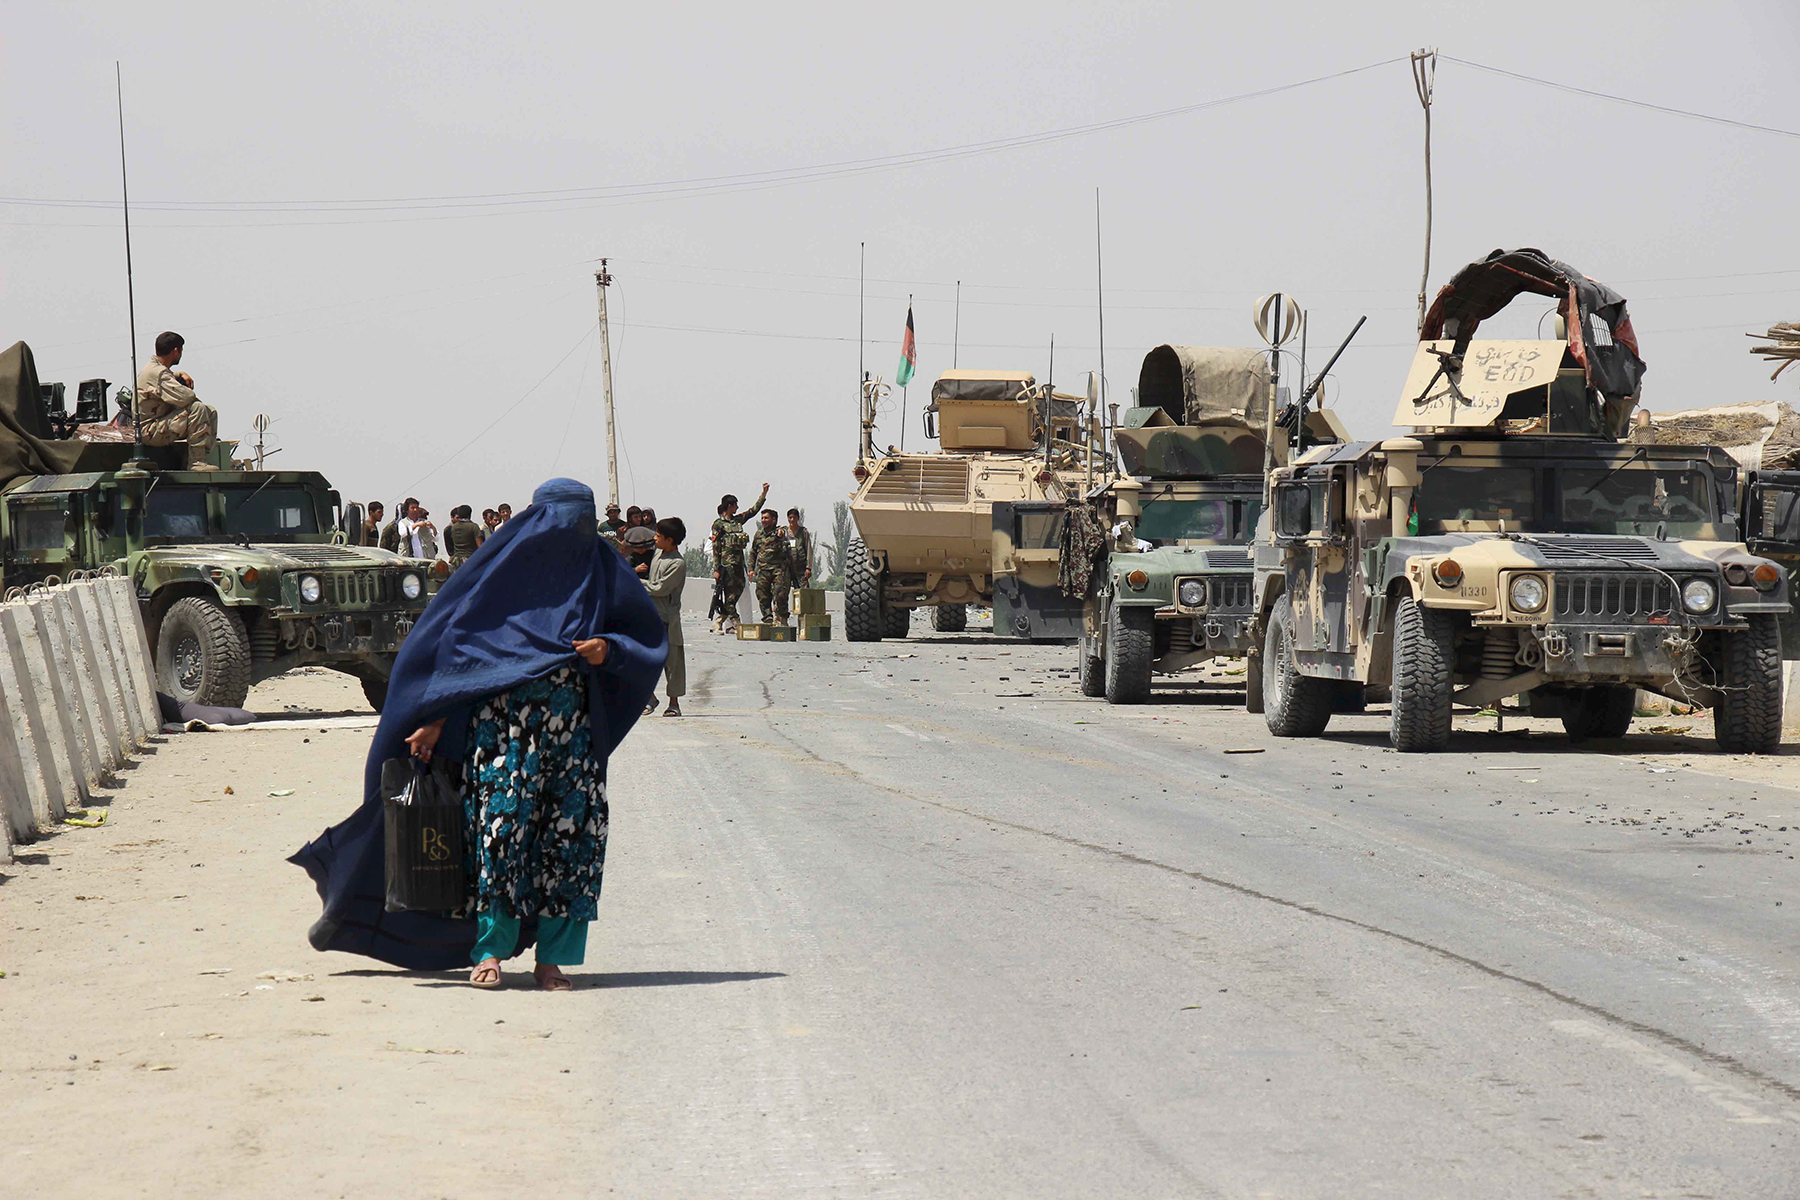 Woman in burqa walking next to tanks.